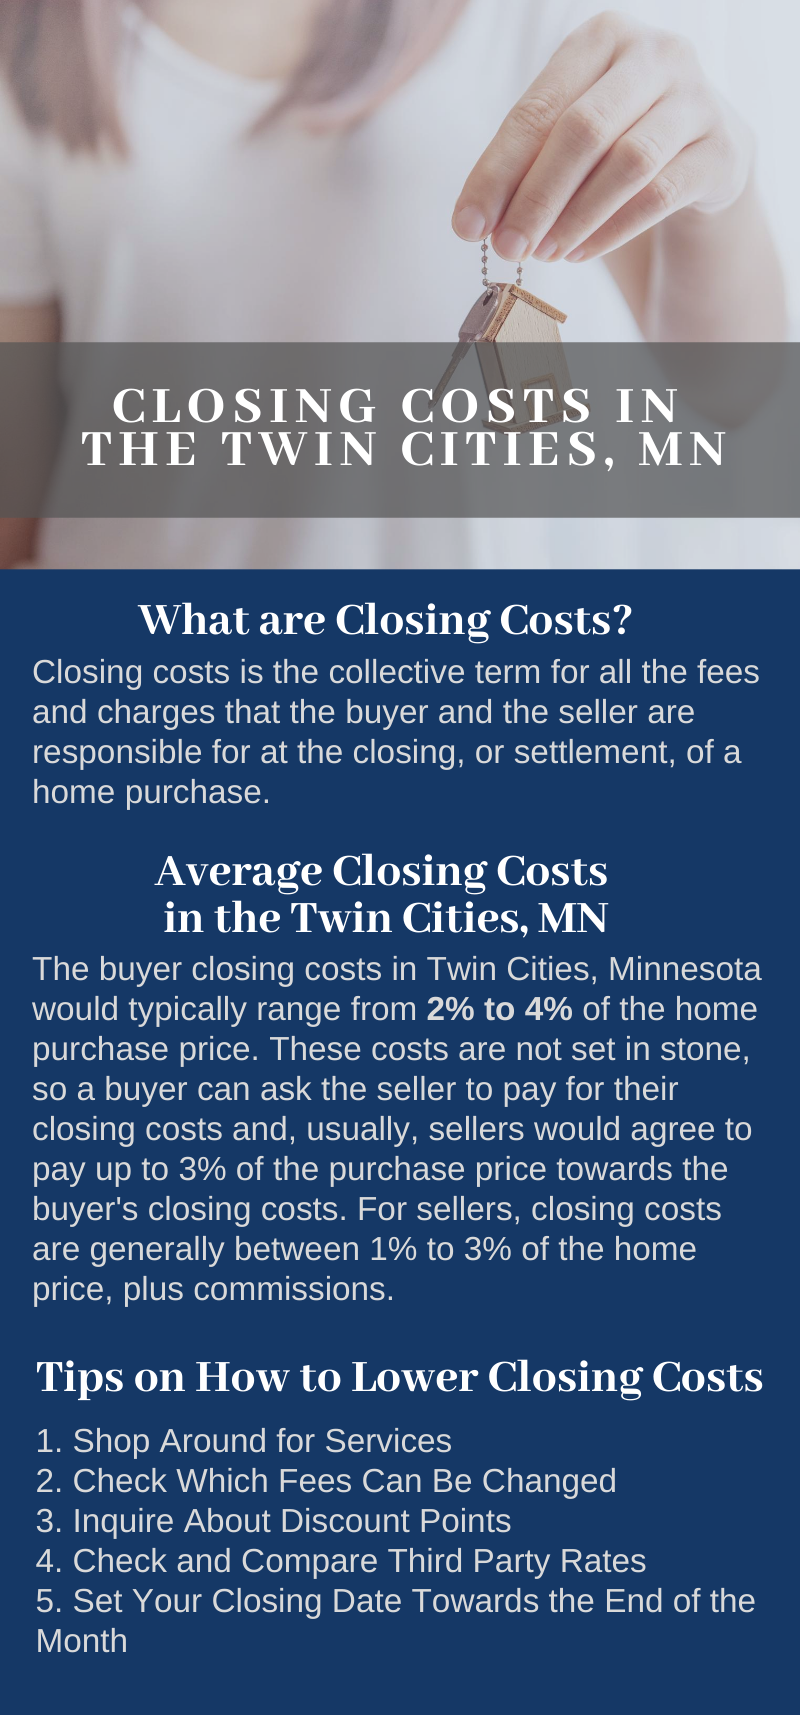 Infographic on the Closing Costs in the Twin Cities MN